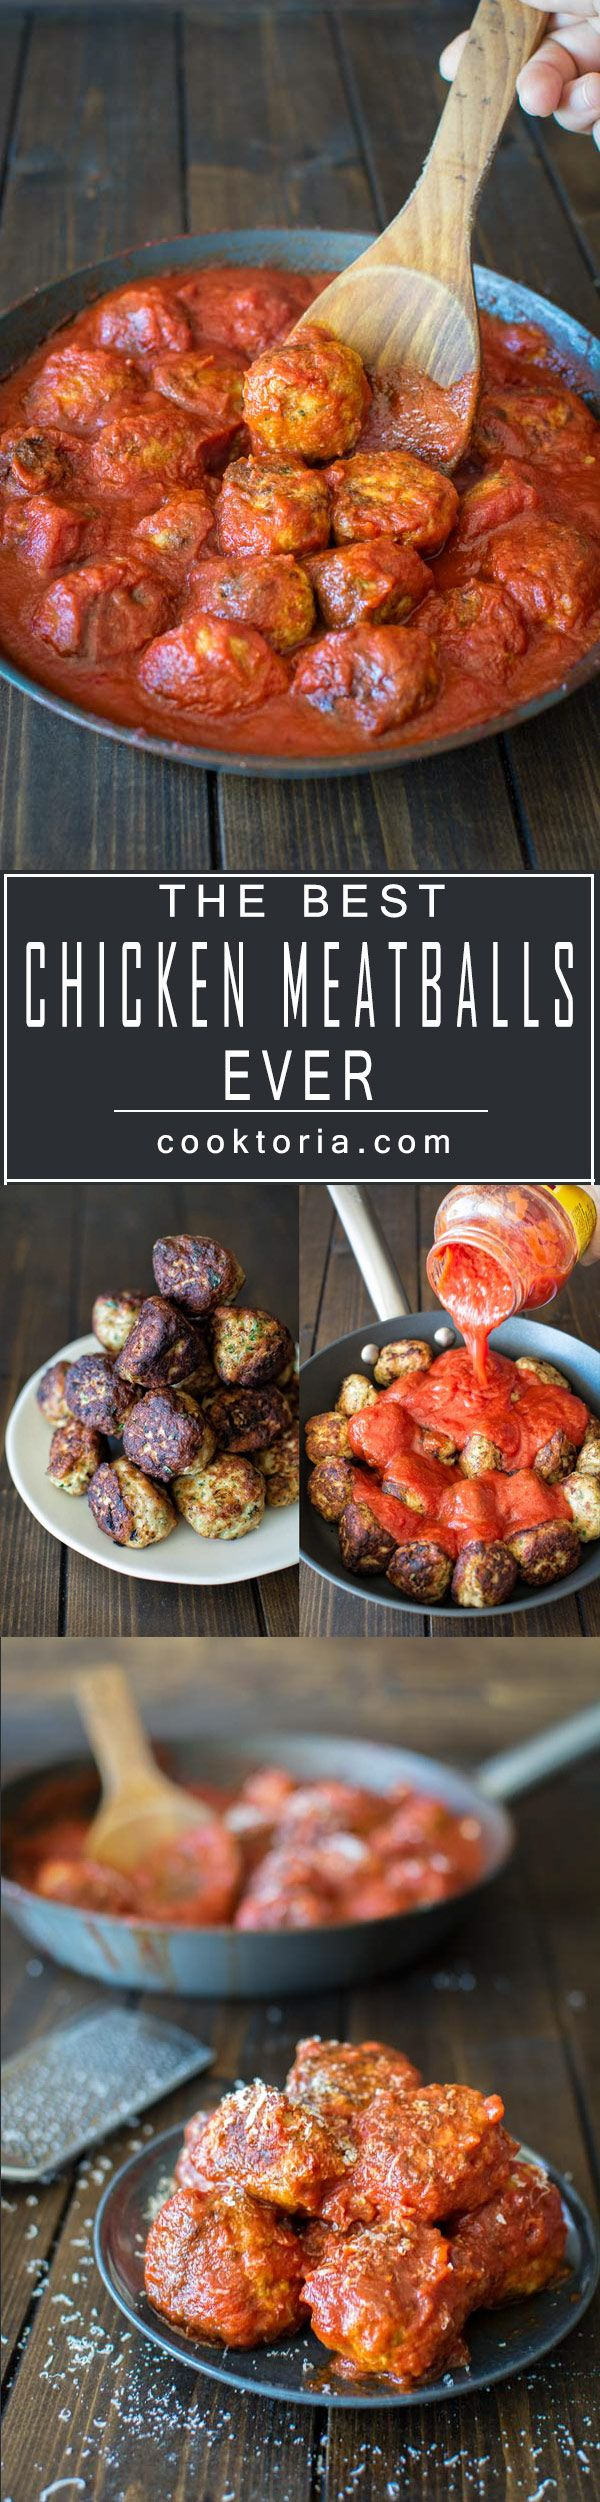 Super moist and flavorful chicken meatballs, covered in rich marinara sauce. This is the only meatballs recipe you'll ever need. Guaranteed. ❤ COOKTORIA.COM